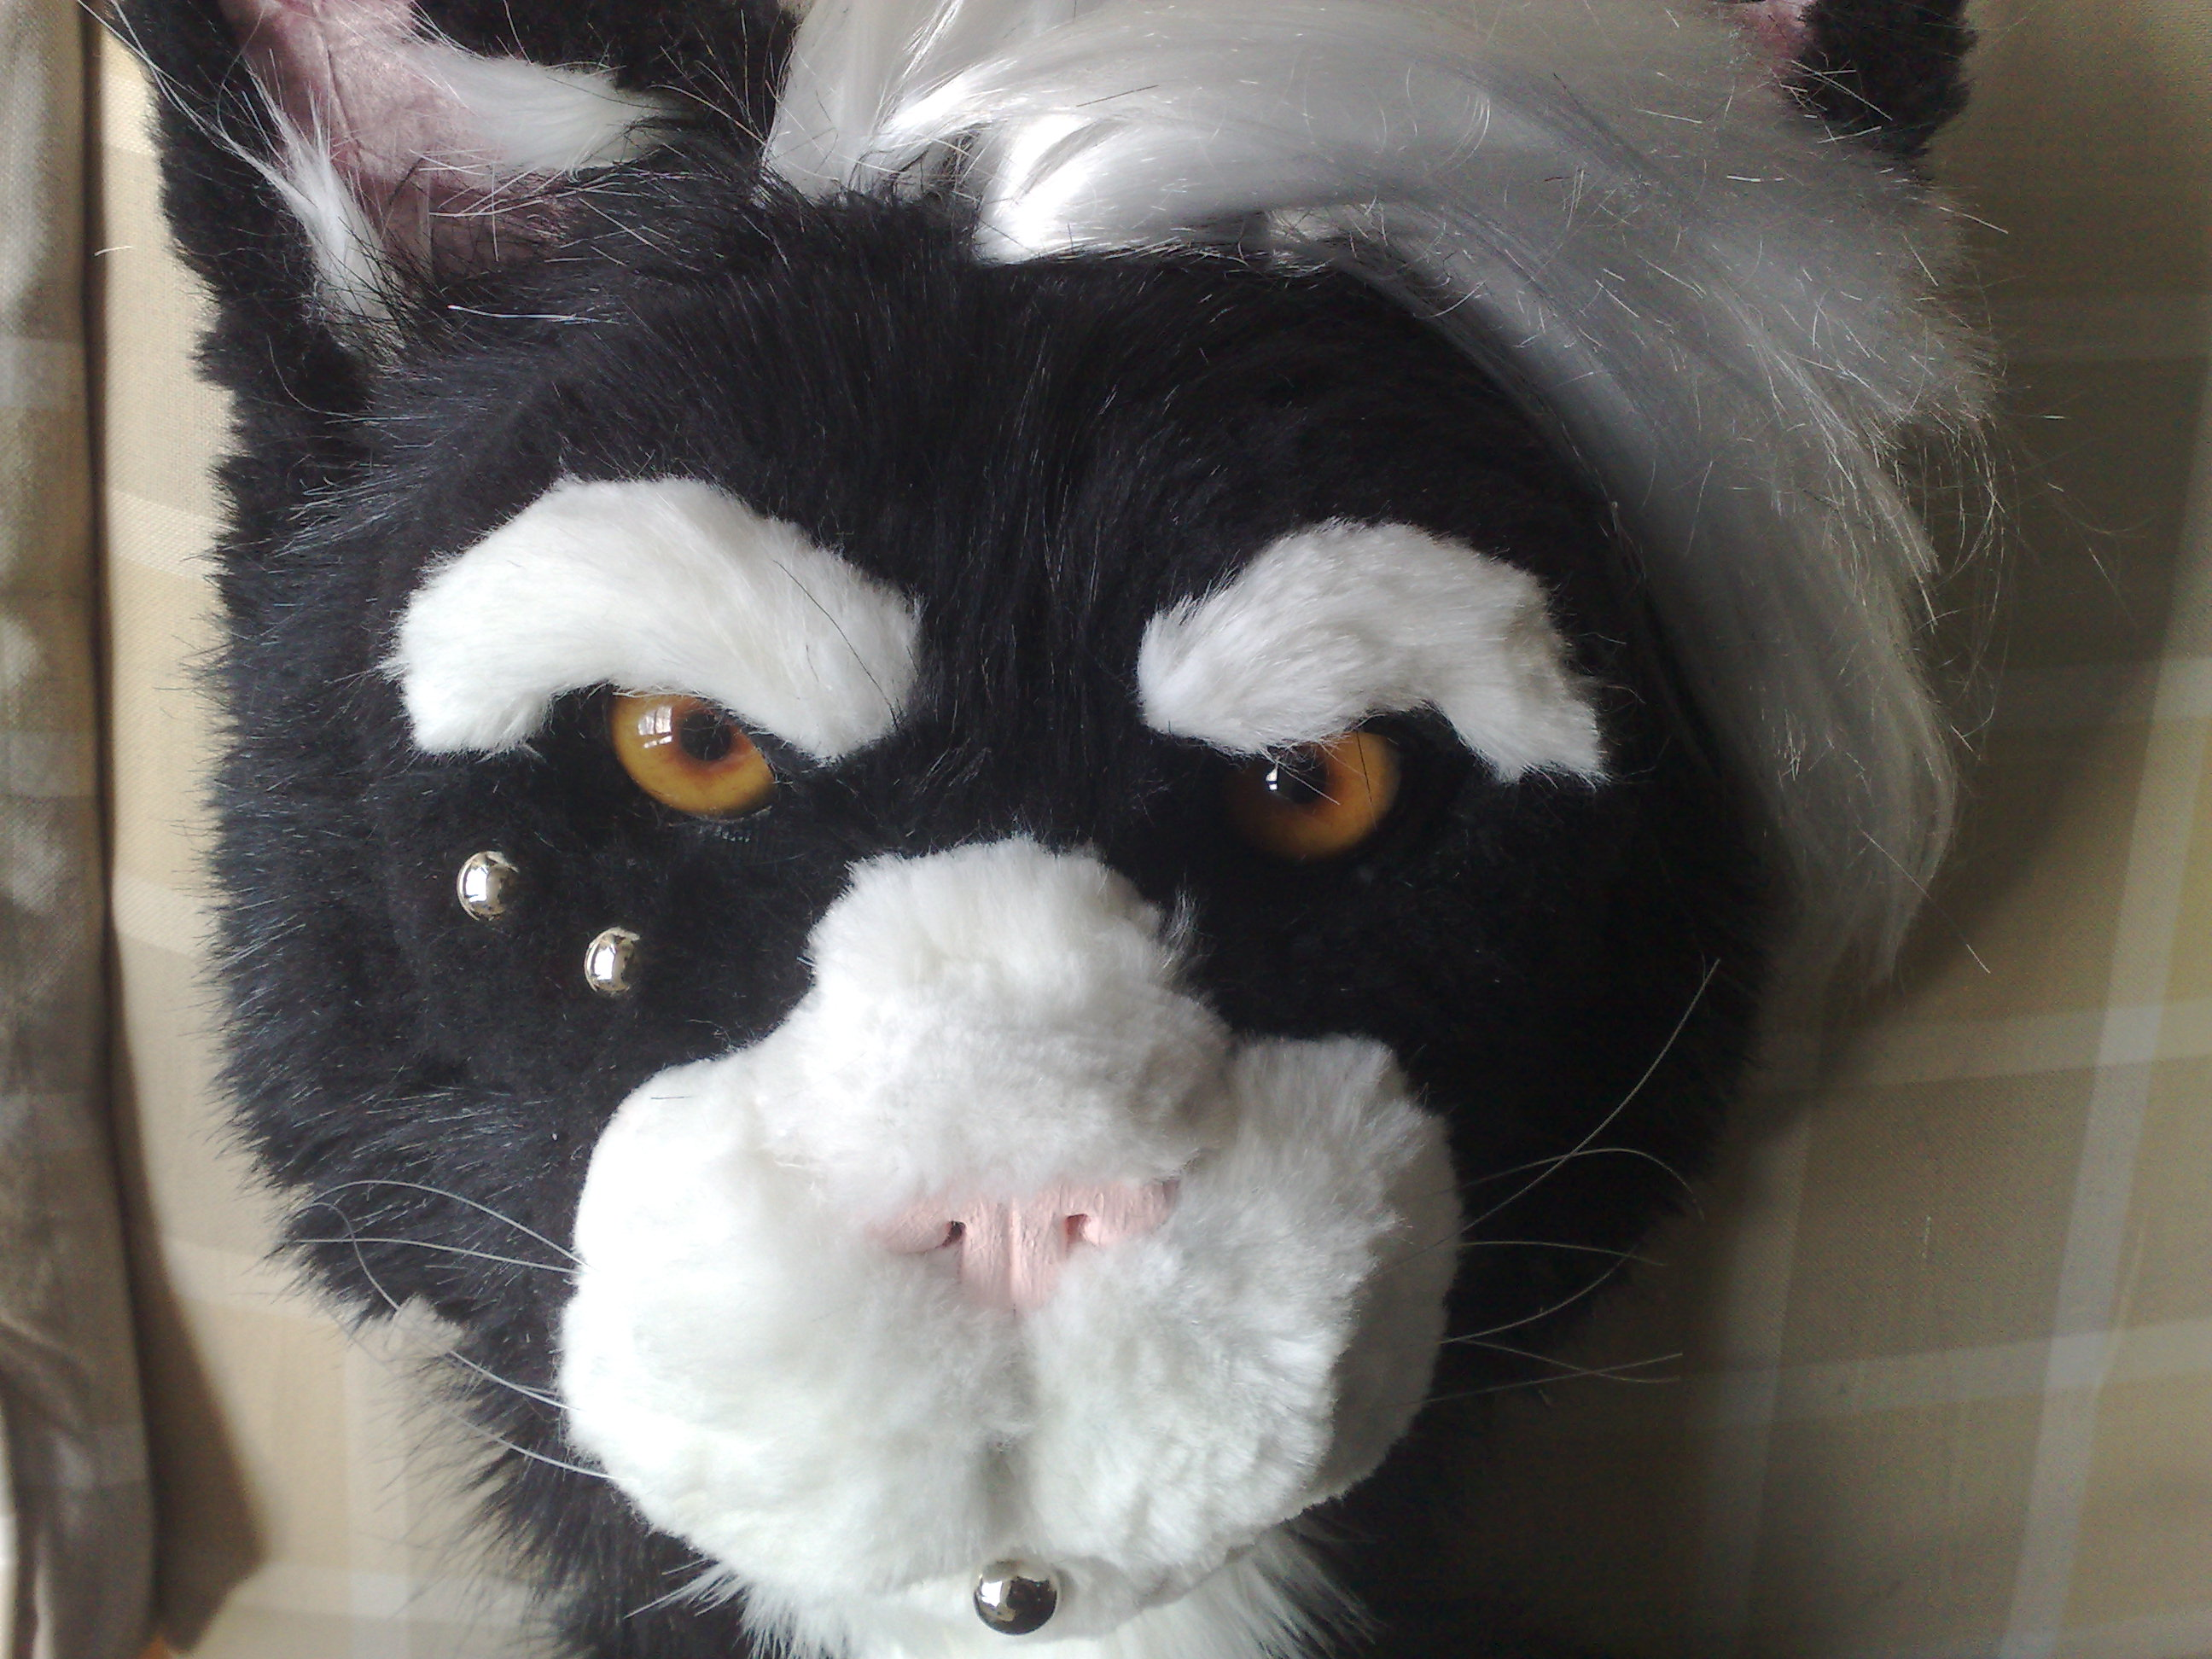 Making An Animal Mascot Head (Fursuit)